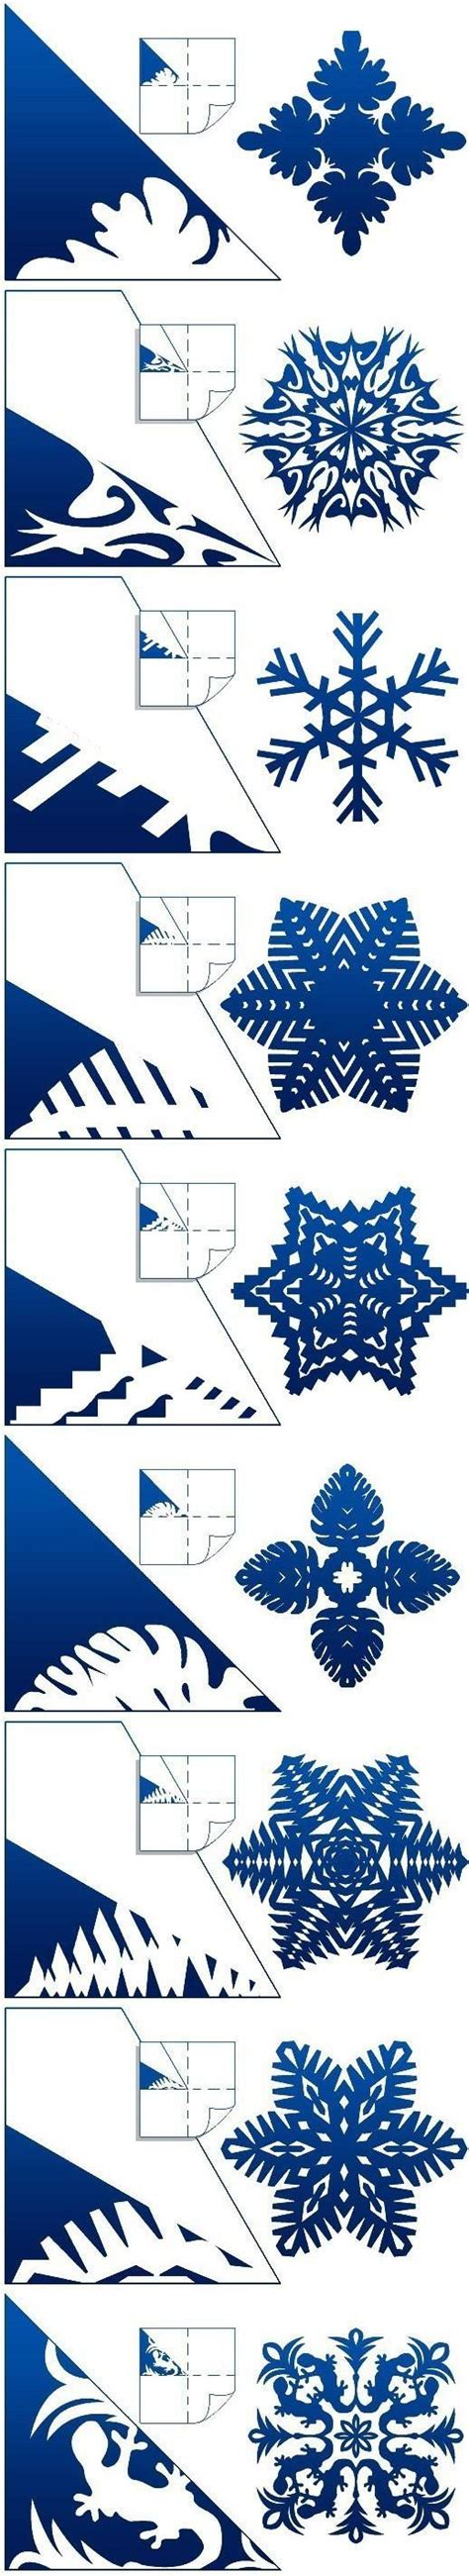 how to make schemes of paper snowflakes step by step diy